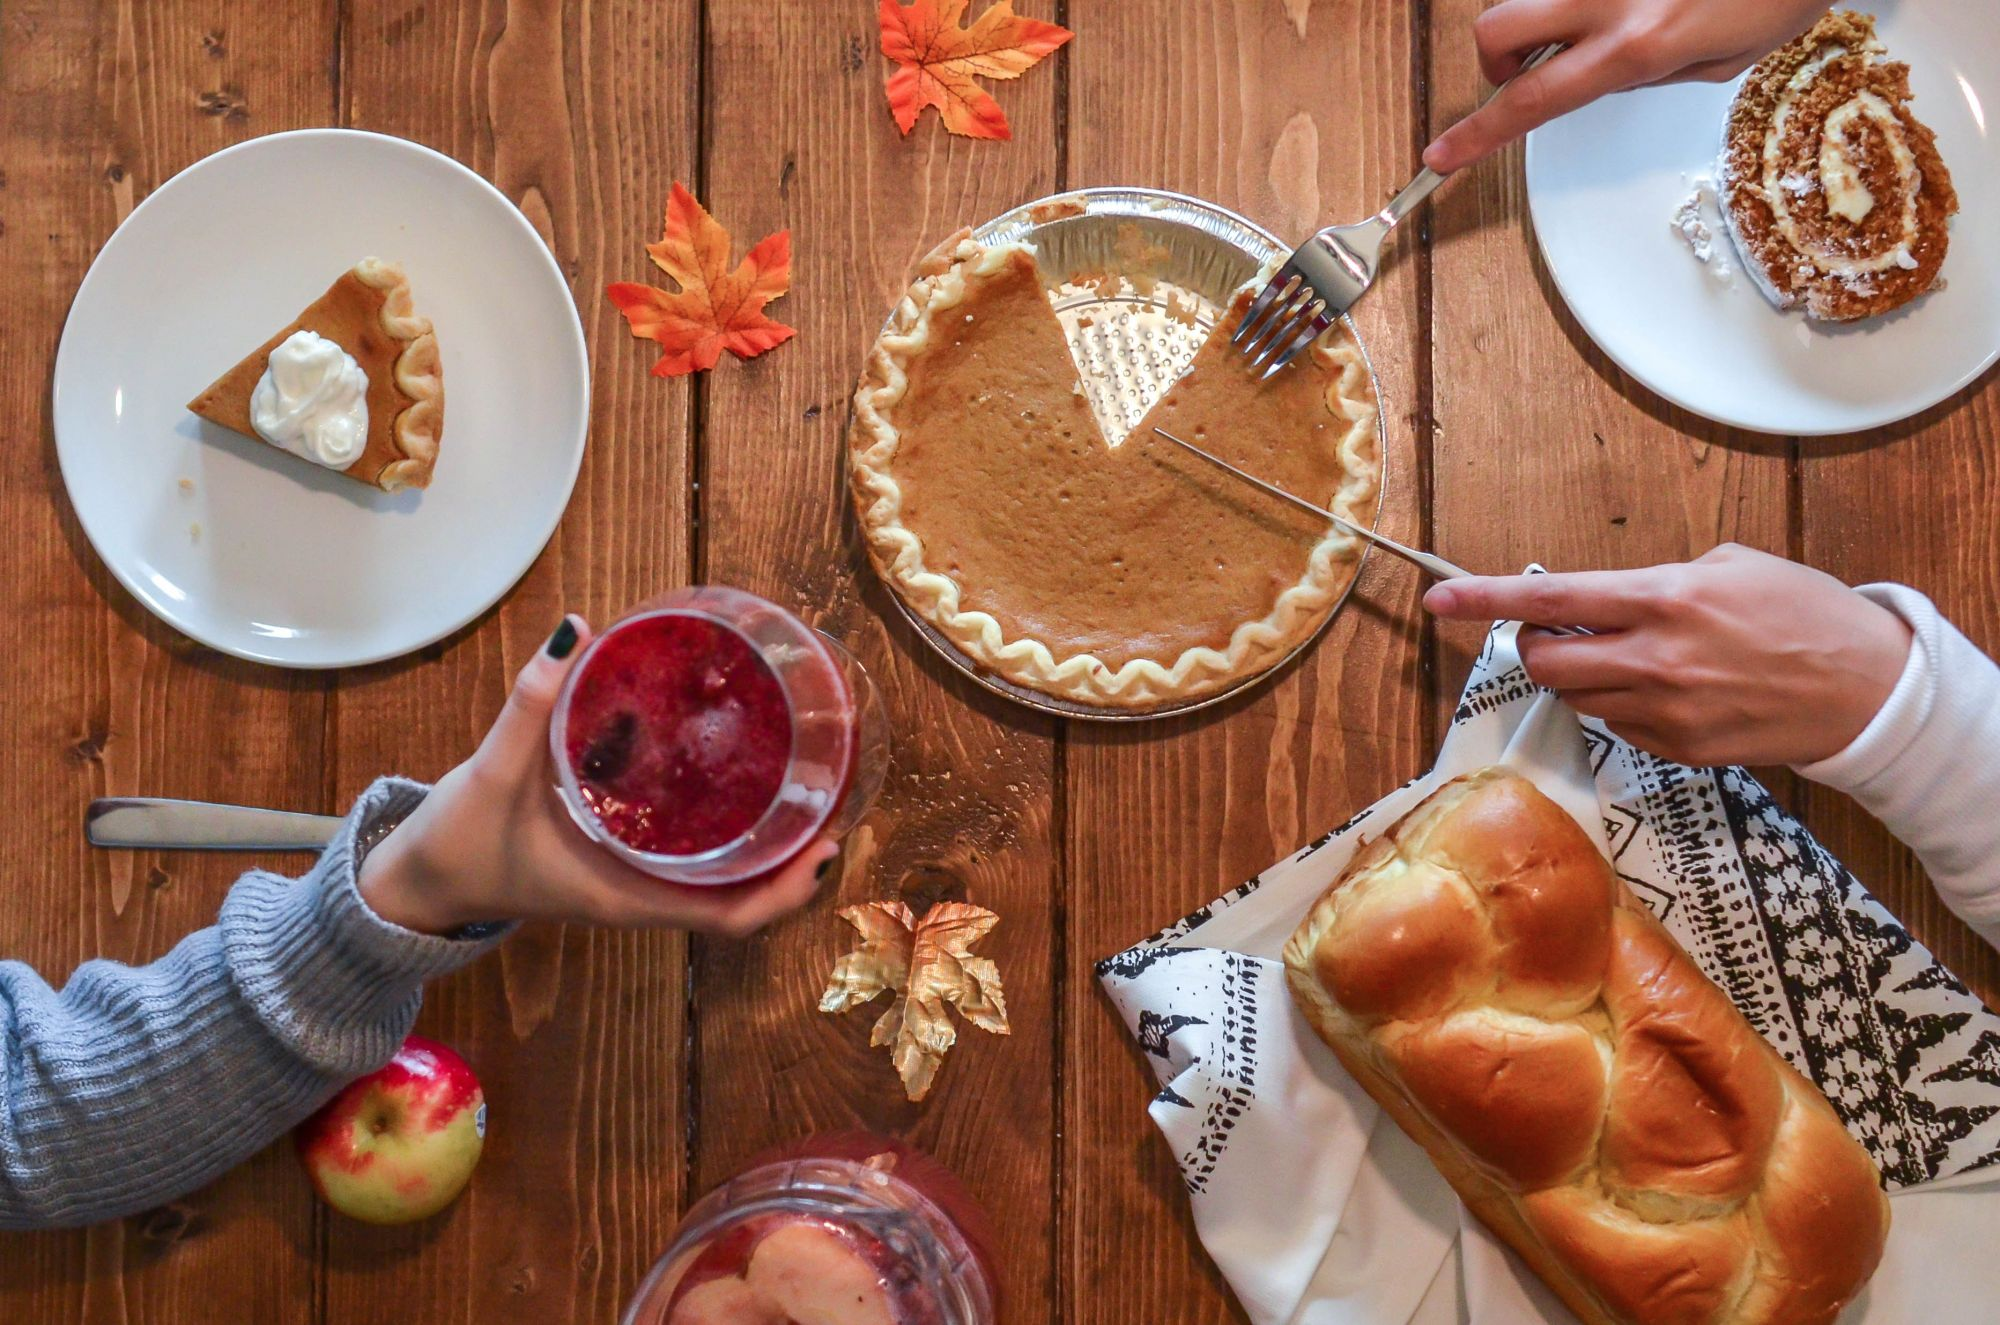 From Pumpkin Pie To Apple Cider: Autumn's Cosiest Recipes